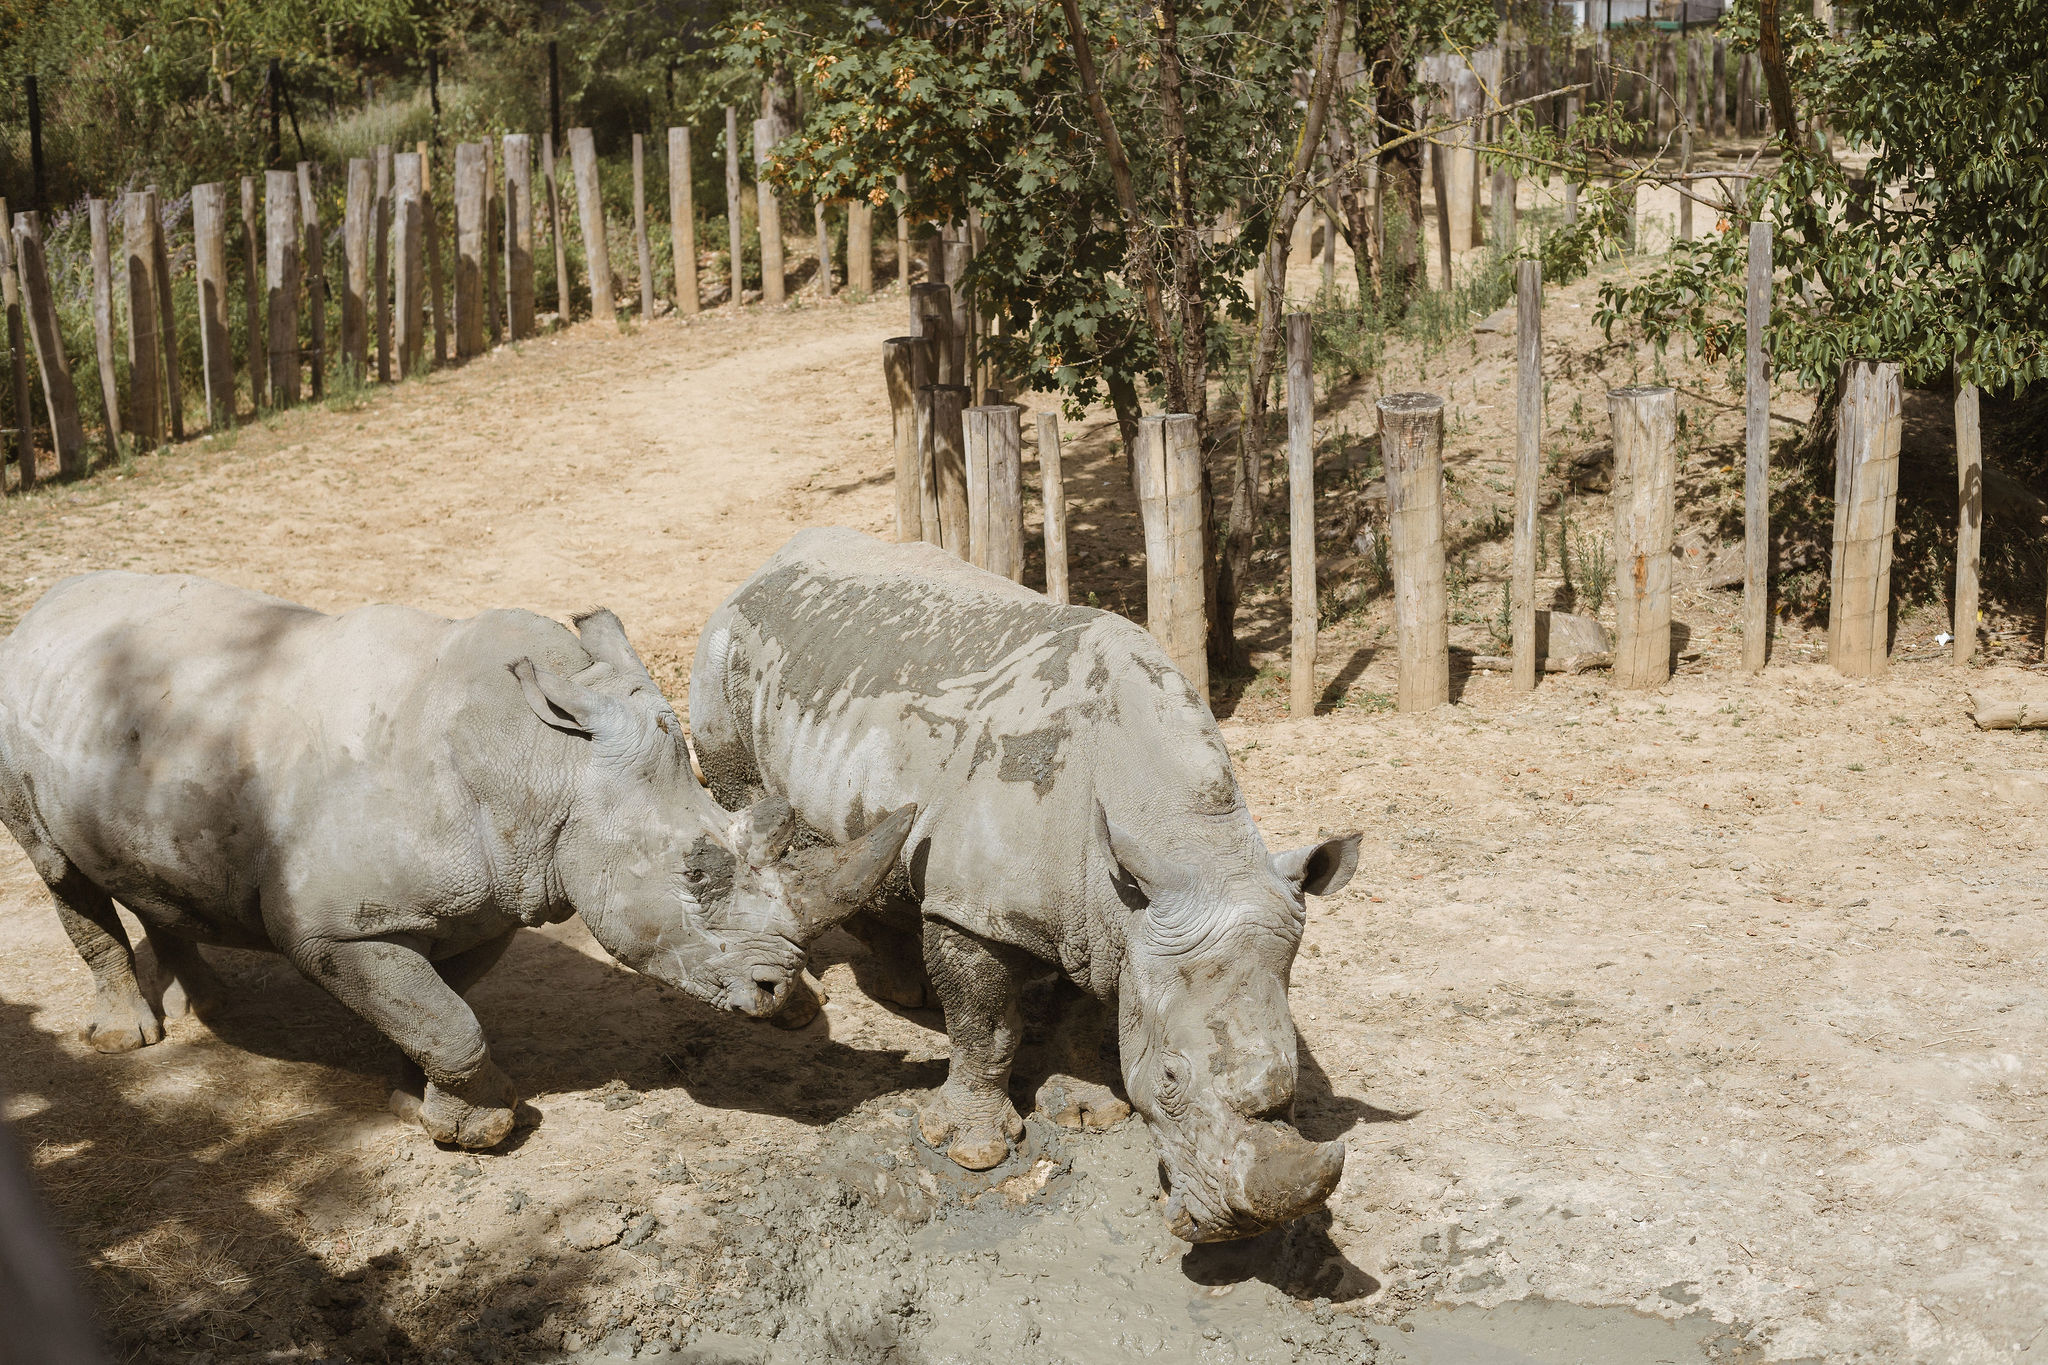 rhinos paris zoo photographer iheartparis.jpg